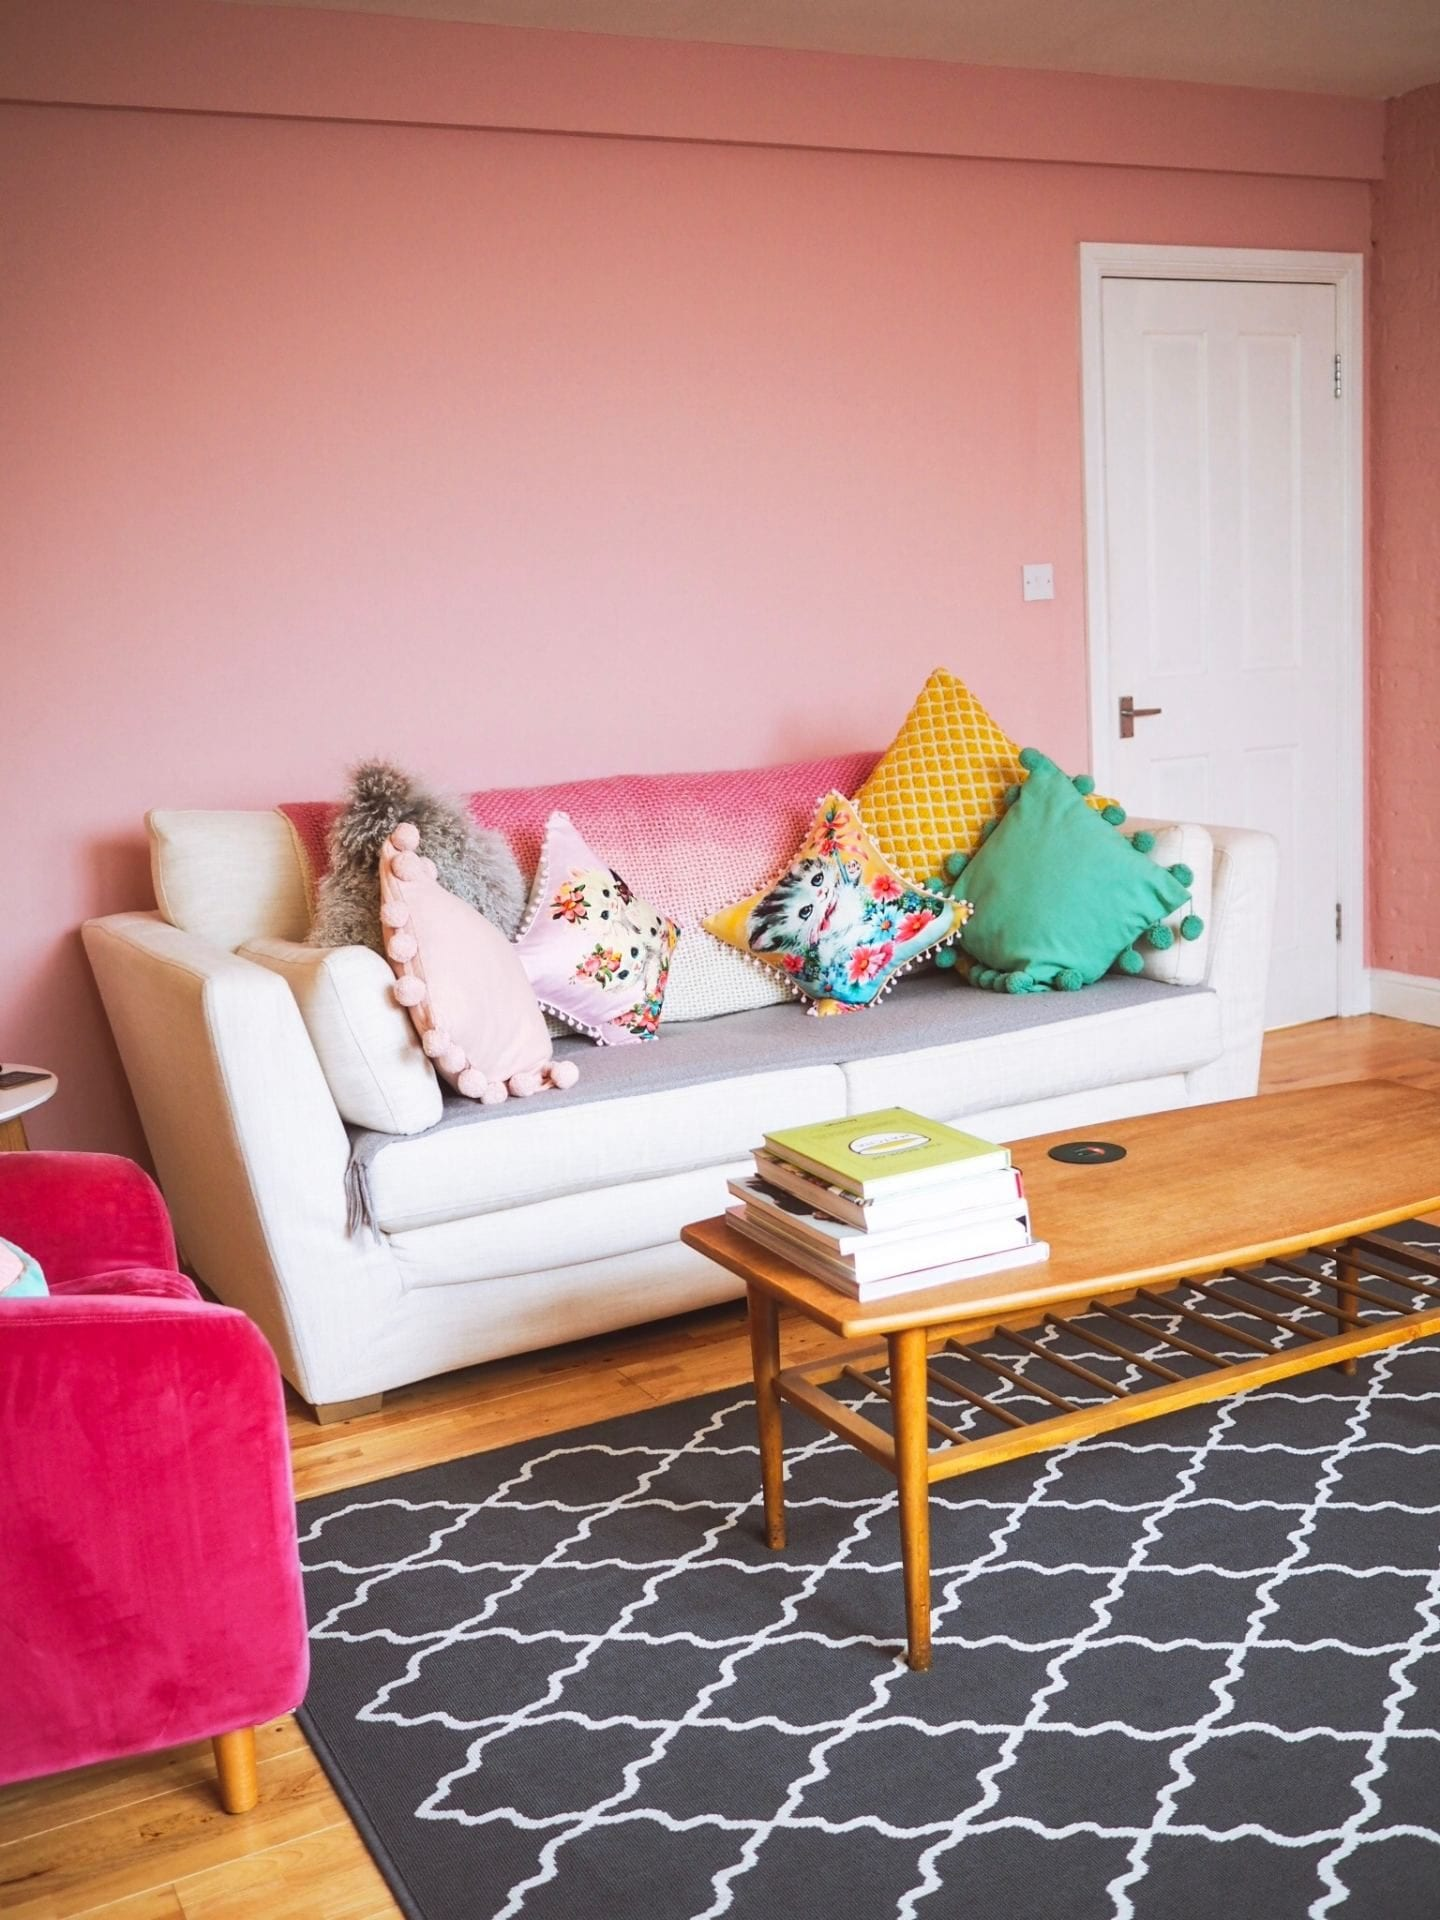 How To Make Your Living Room More Colourful :: Interior Door Paint Ideas before white door pink door